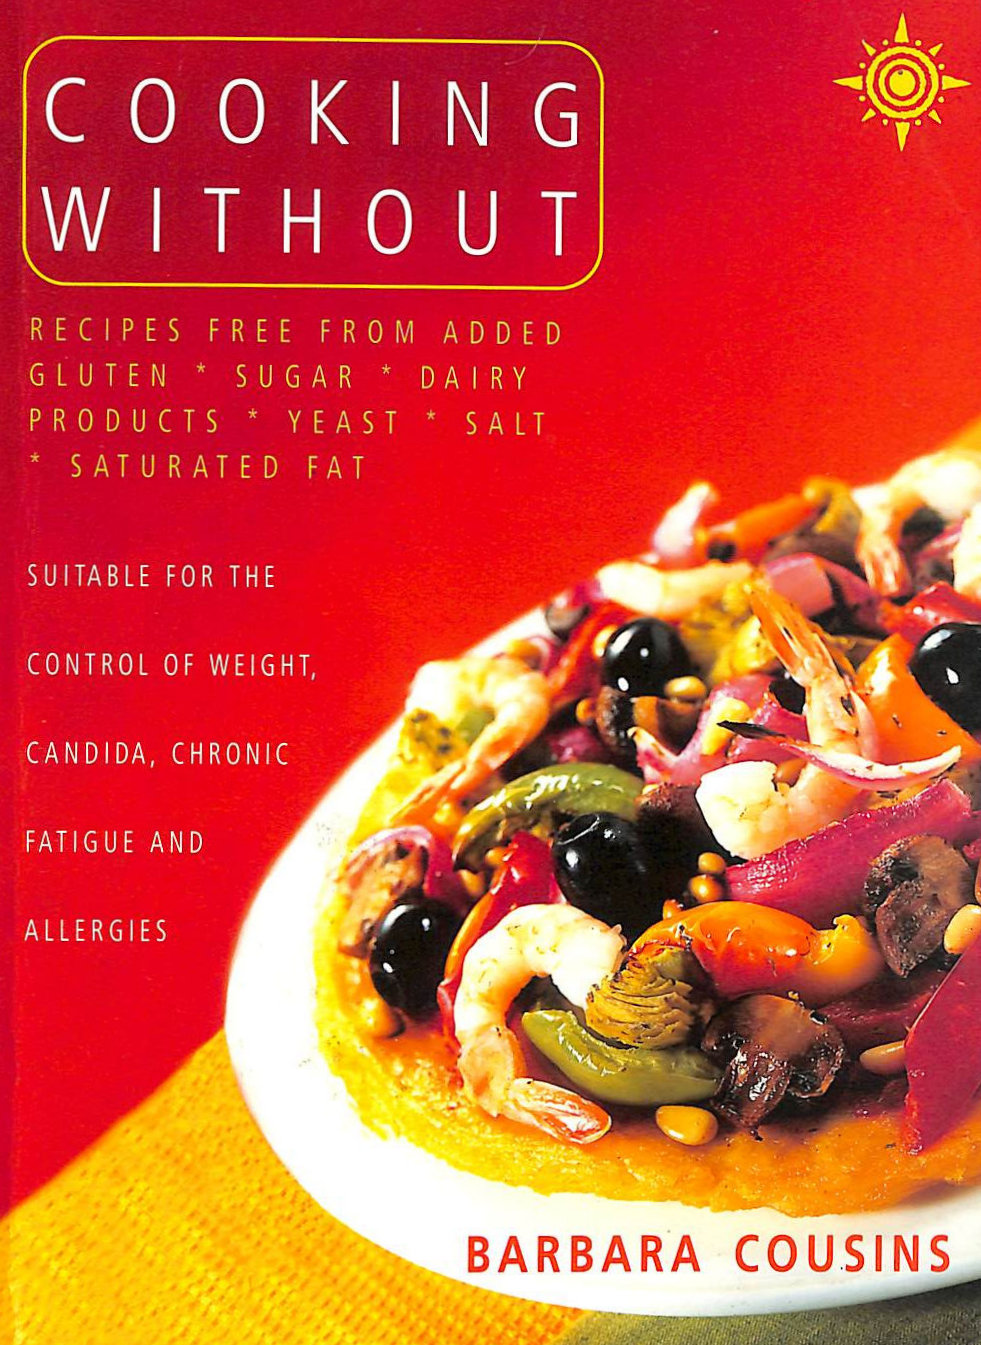 Image for Cooking Without: All recipes free from added gluten, sugar, dairy produce, yeast, salt and saturated fat